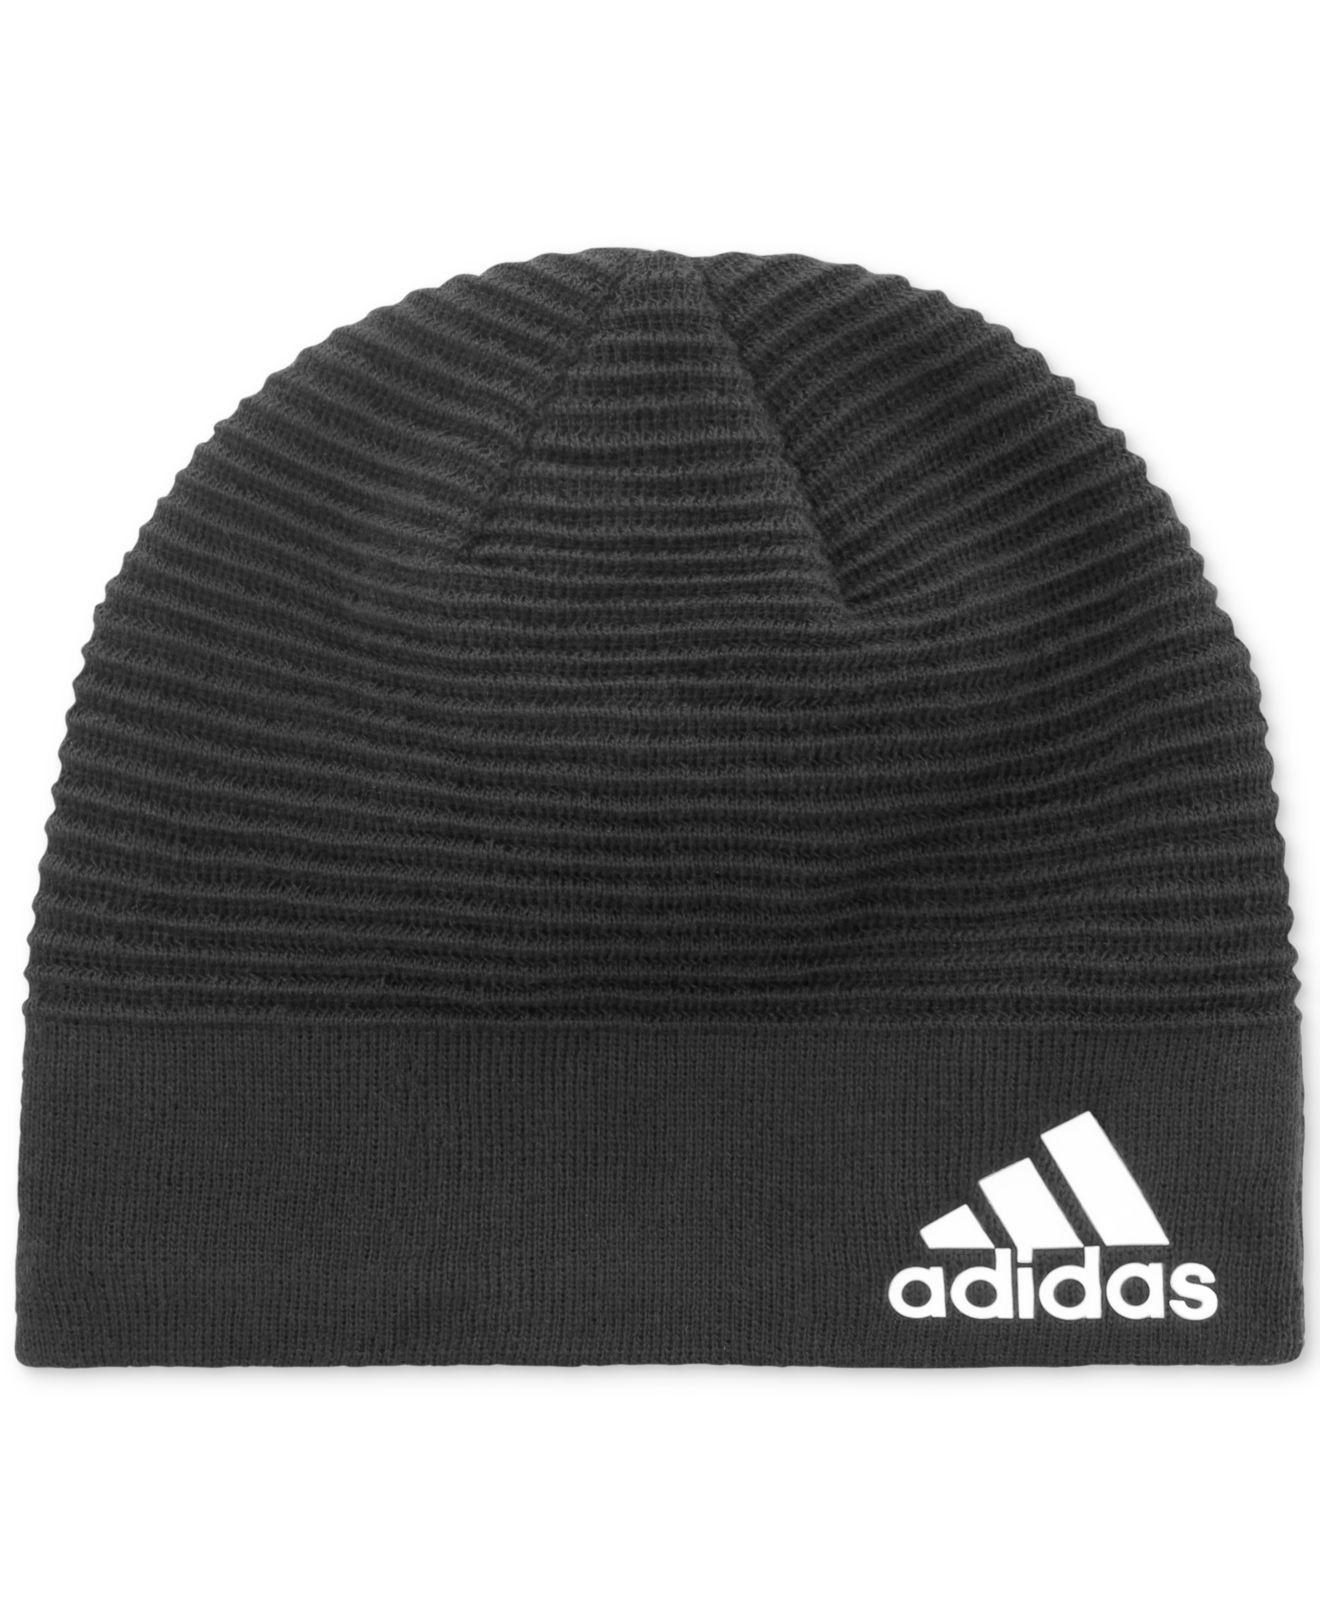 Lyst - adidas Creator Climalite® Climawarm® Beanie in Black for Men bb2d39536